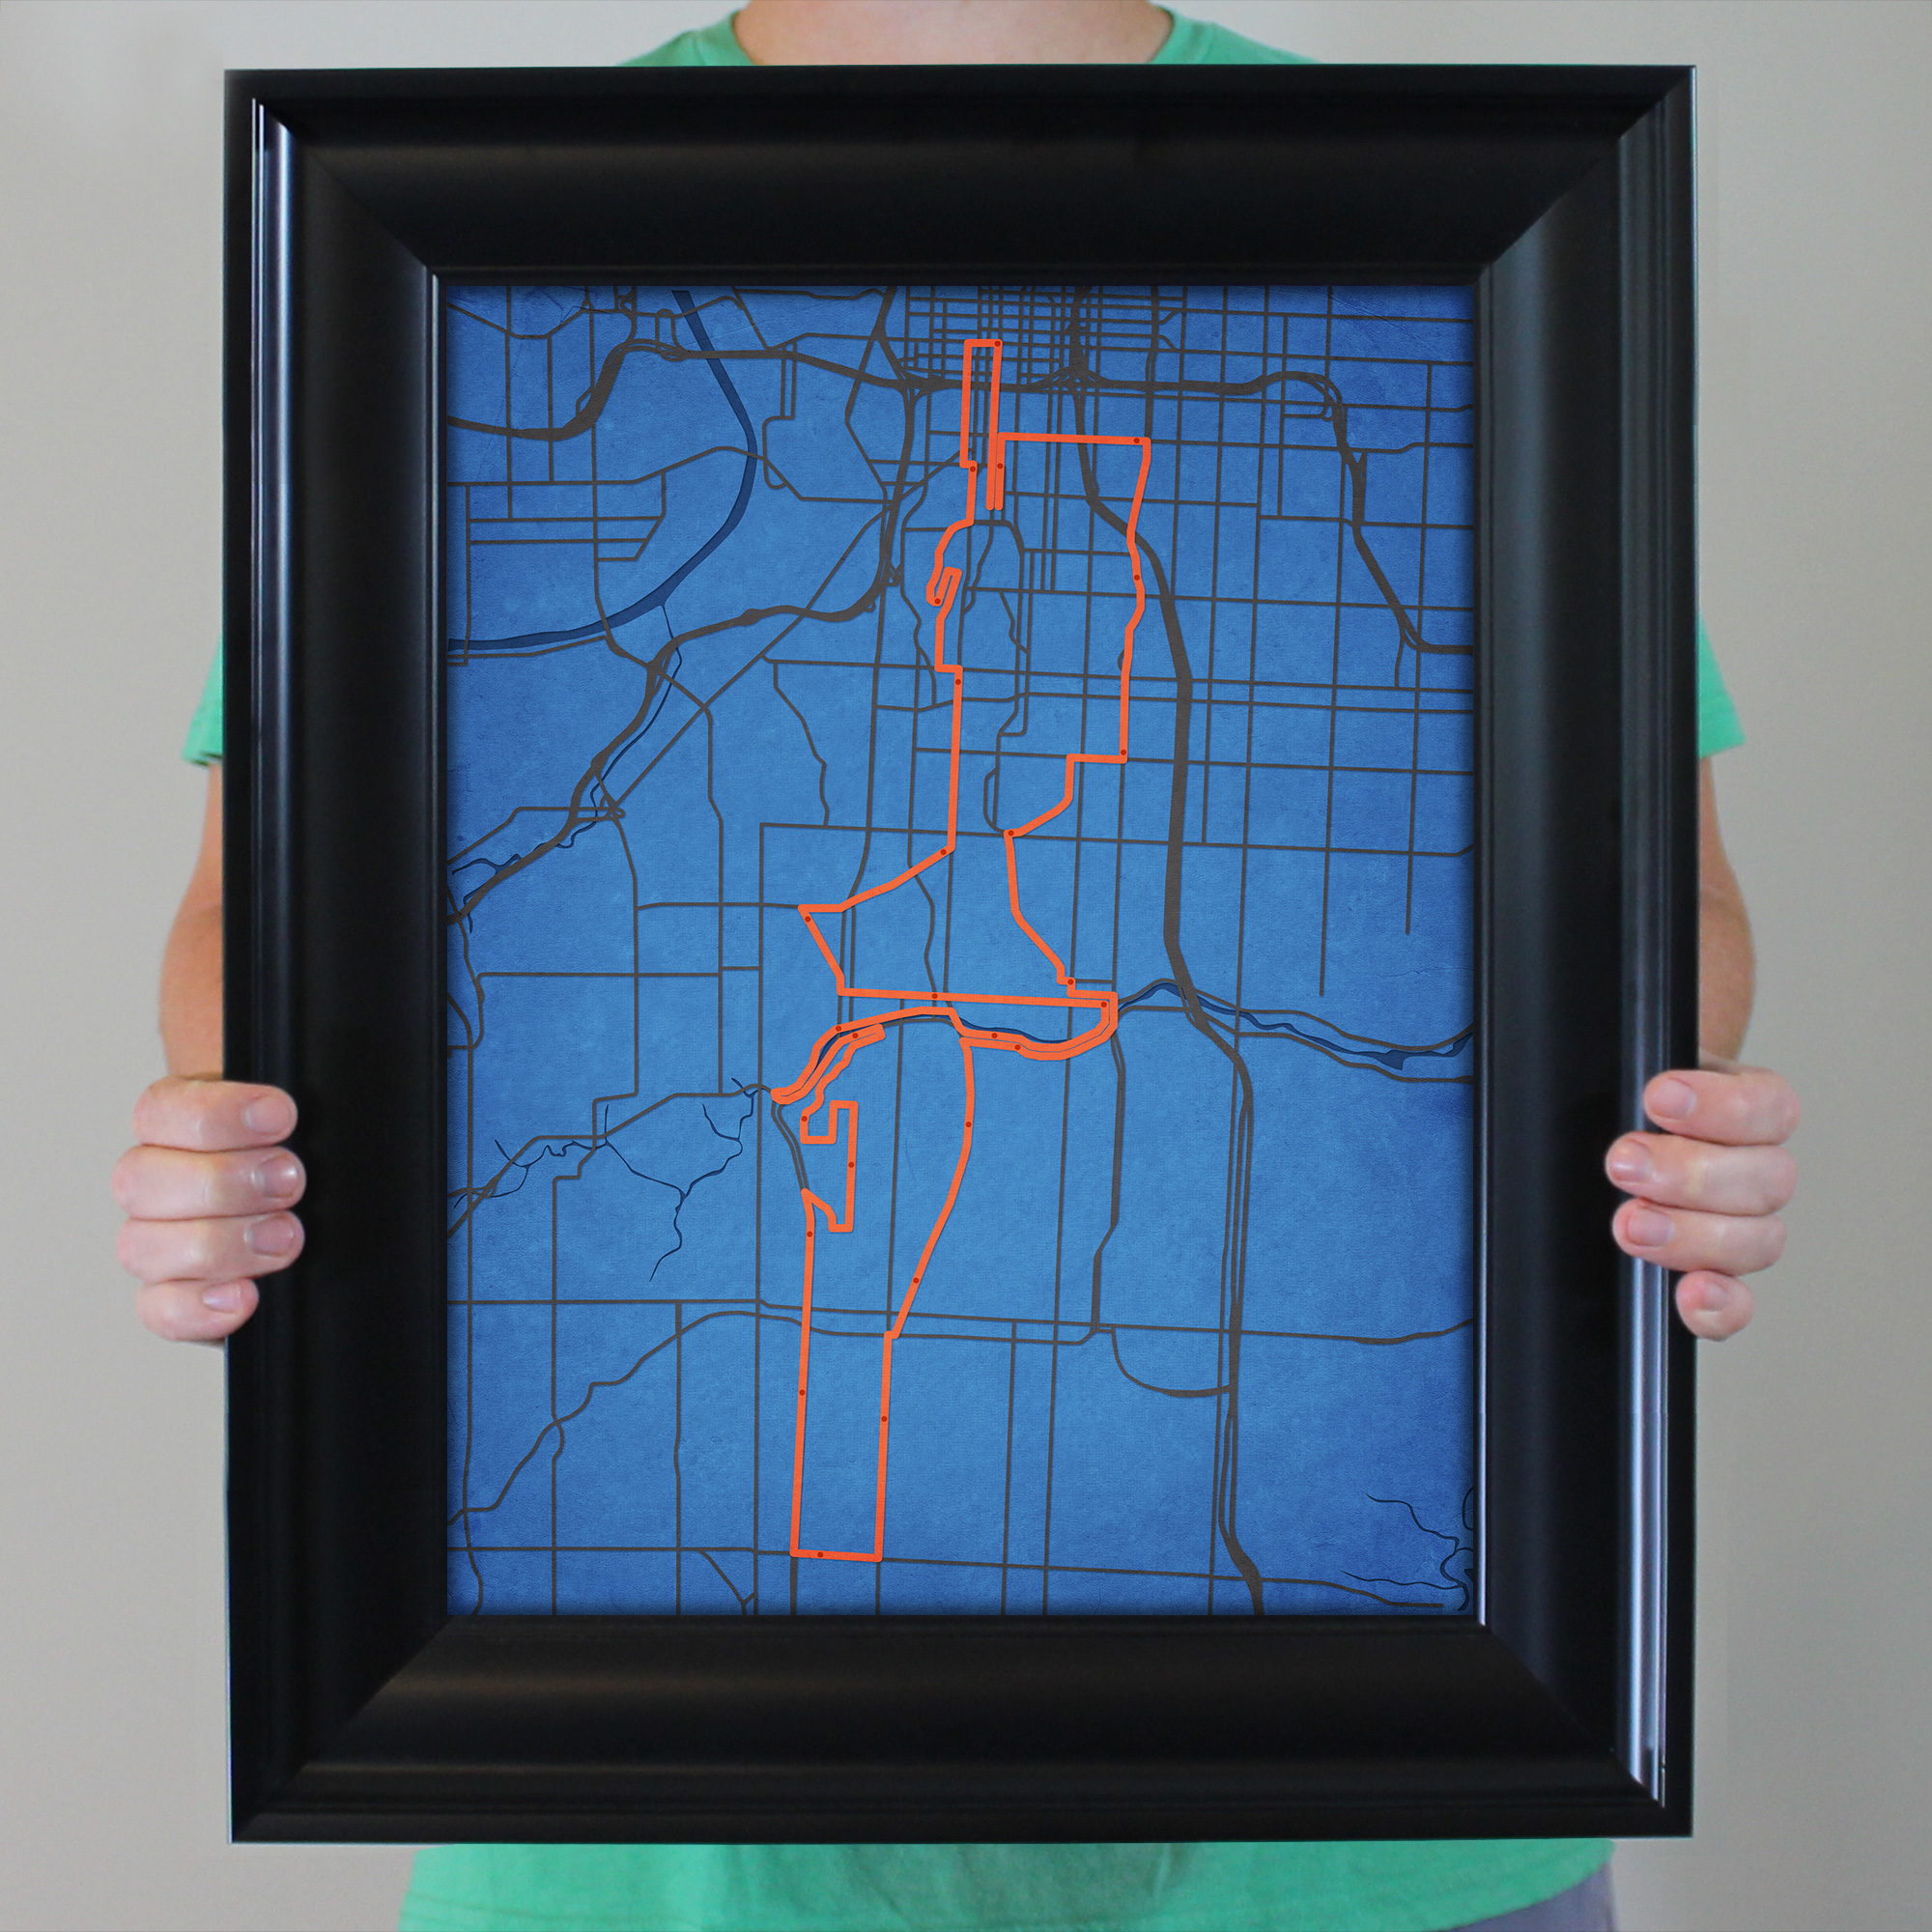 Waddell Amp Reed Kansas City Marathon Course Map  City Prints